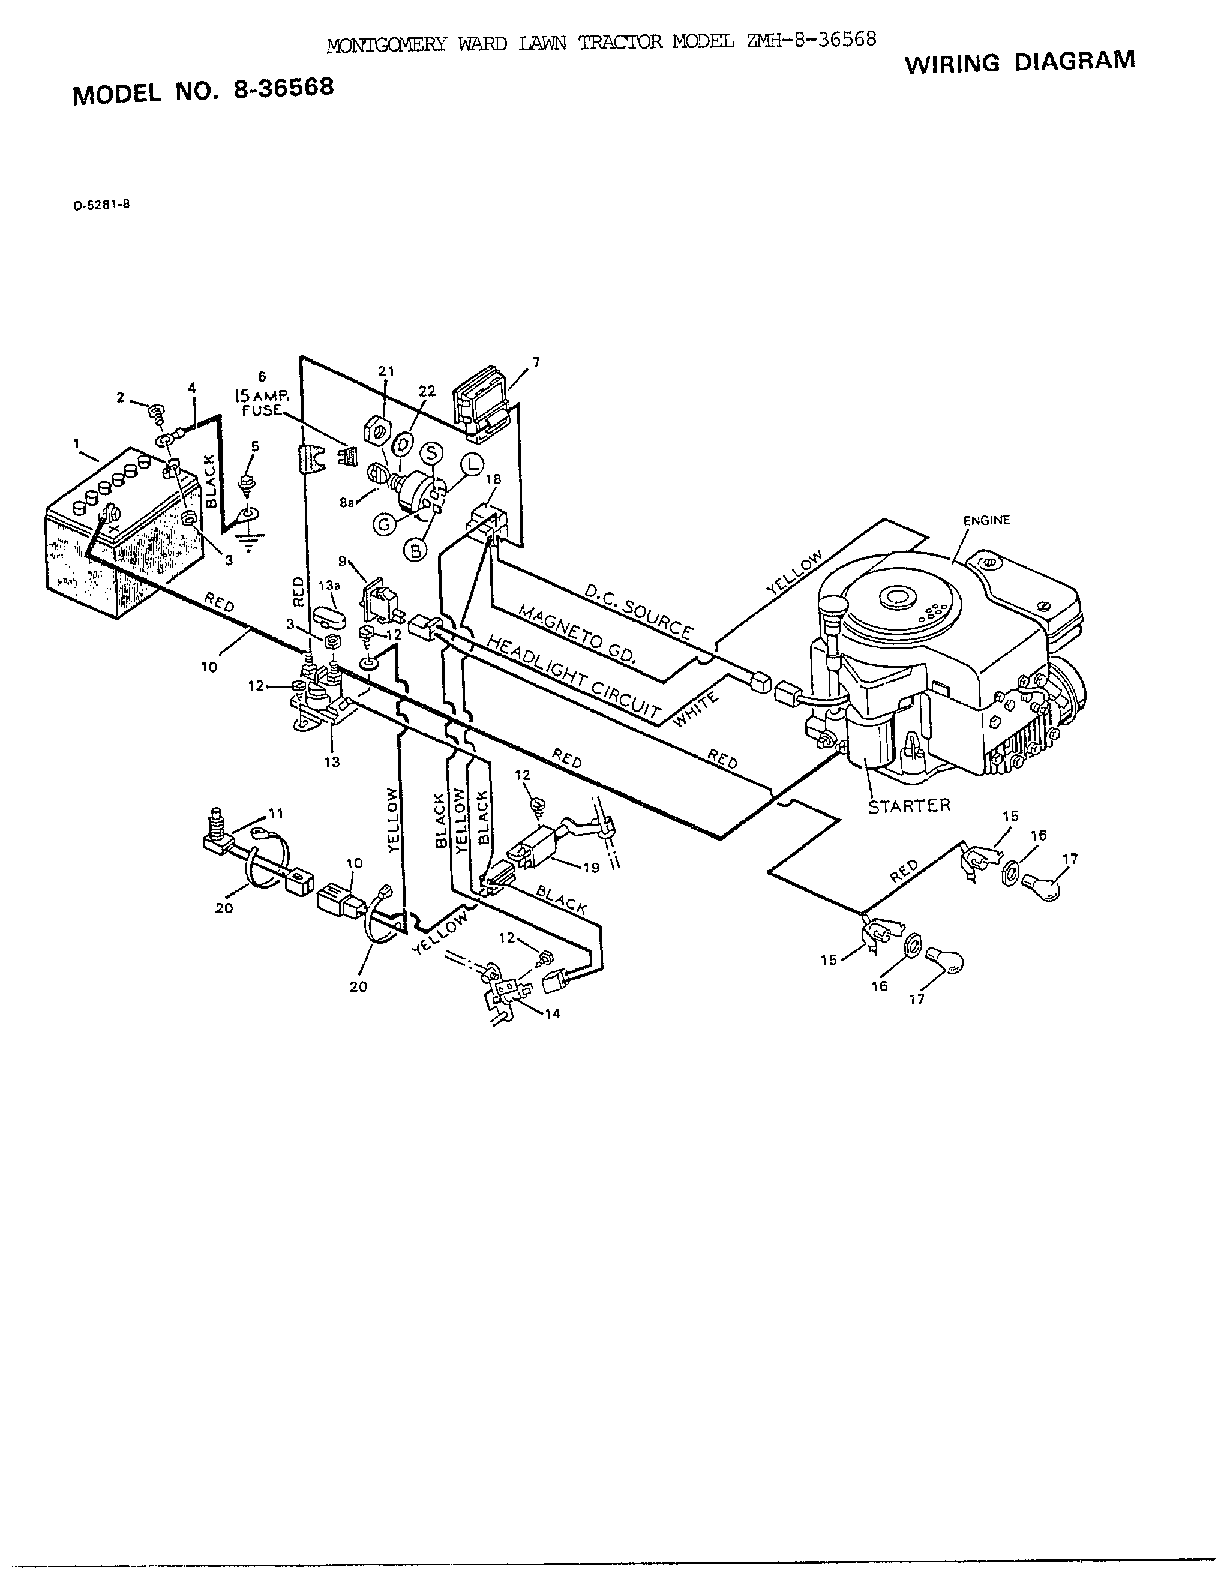 hight resolution of  sears wiring diagrams wiring diagram on wiring harness for simplicity lawn mower wiring harness